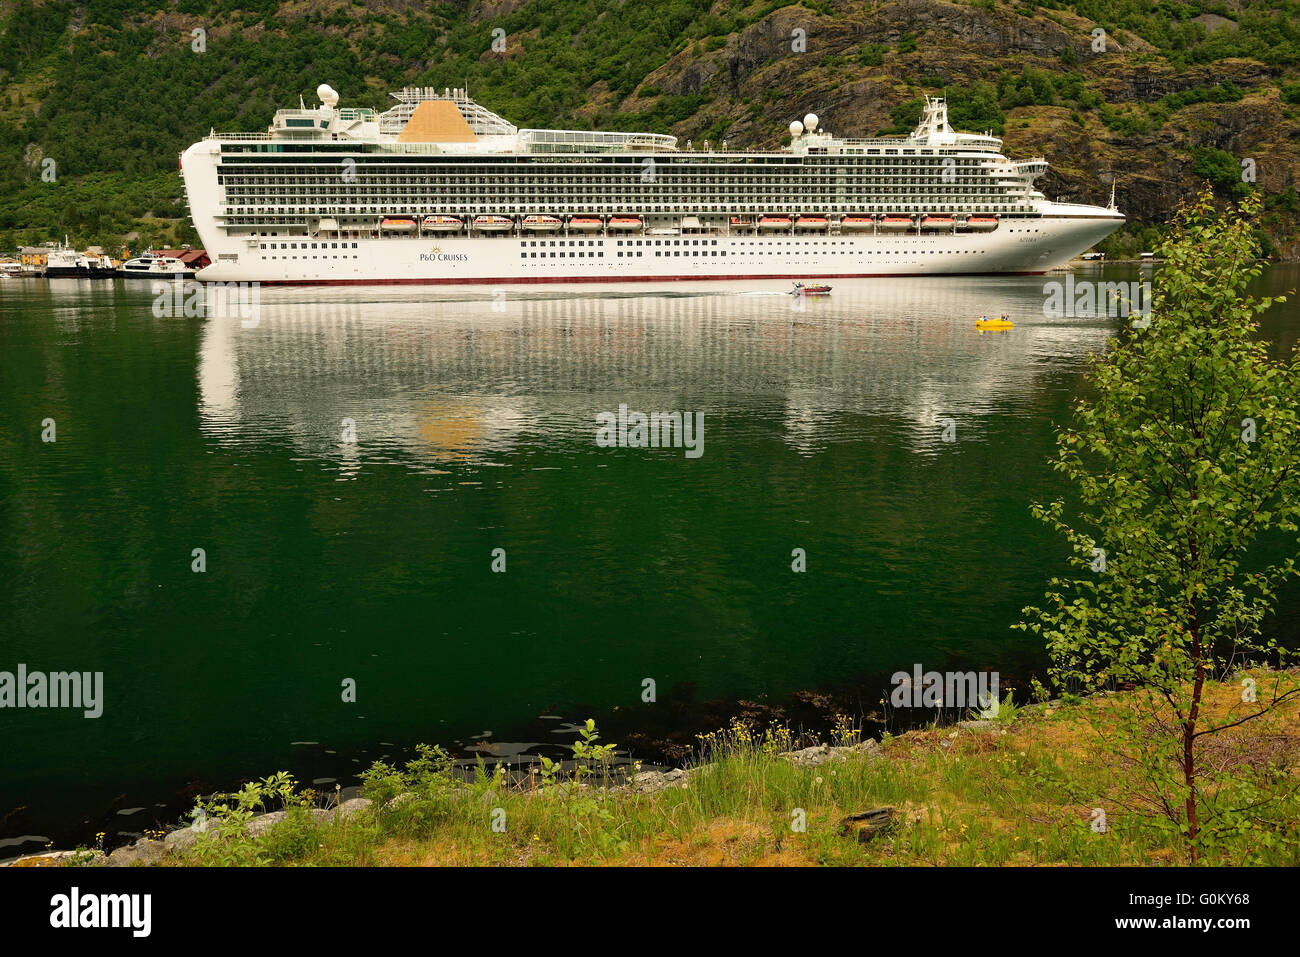 P&O cruise ship Azura berthed at Flam on the Aurlandsfjorden, a branch of the Sognefjord, which is Norway's - Stock Image